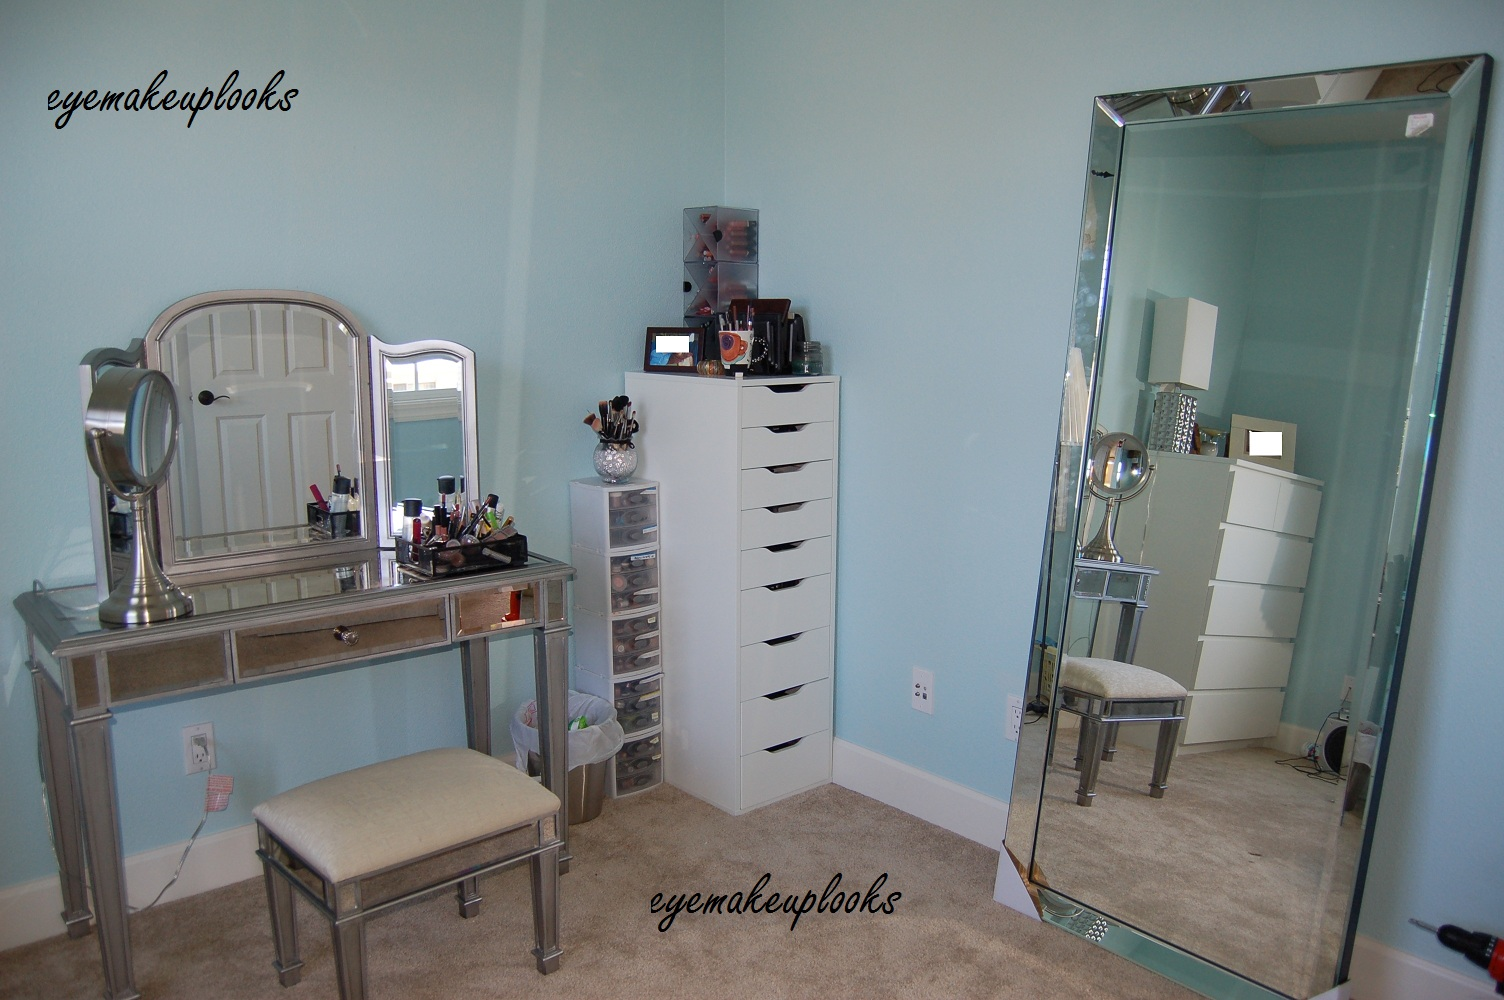 Eye makeup looks: My new makeup room!